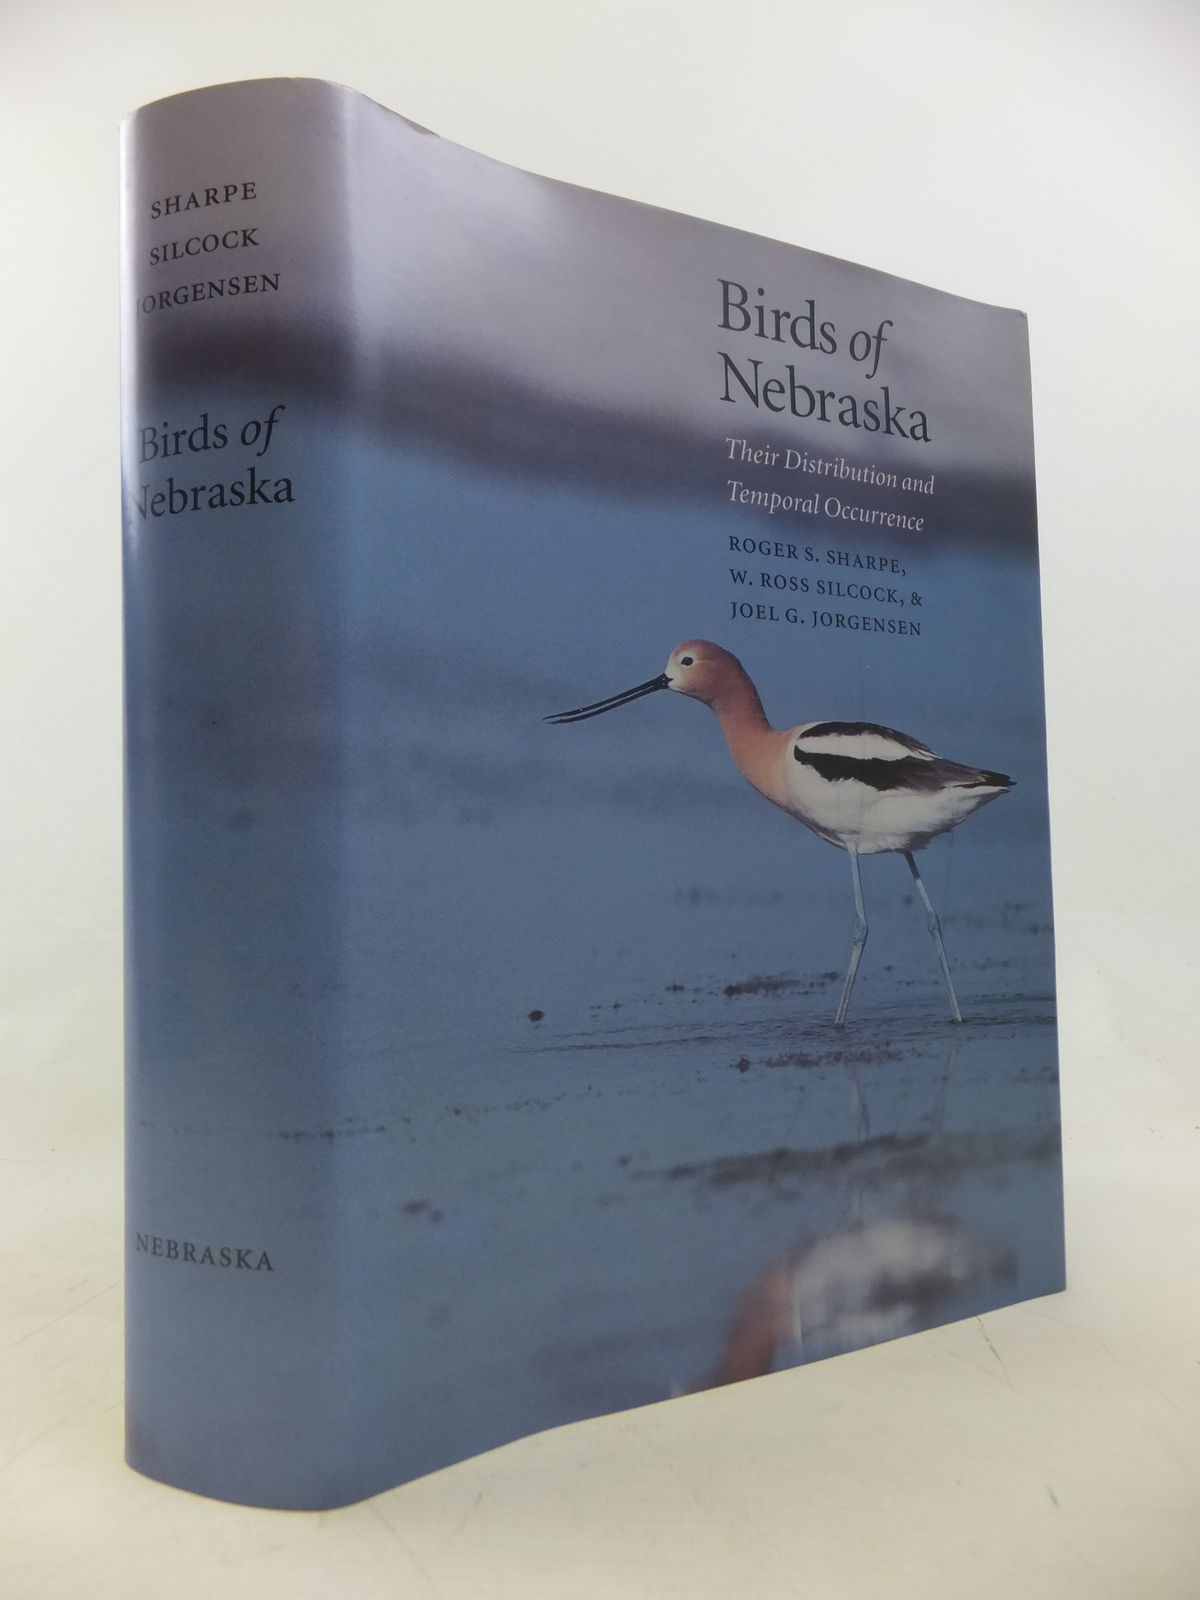 Photo of BIRDS OF NEBRASKA THEIR DISTRIBUTION & TEMPORAL OCCURRENCE written by Sharpe, Roger S.<br />Silcock, W. Ross<br />Jorgensen, Joel G. published by Univeristy Of Nebraska Press (STOCK CODE: 1811150)  for sale by Stella & Rose's Books